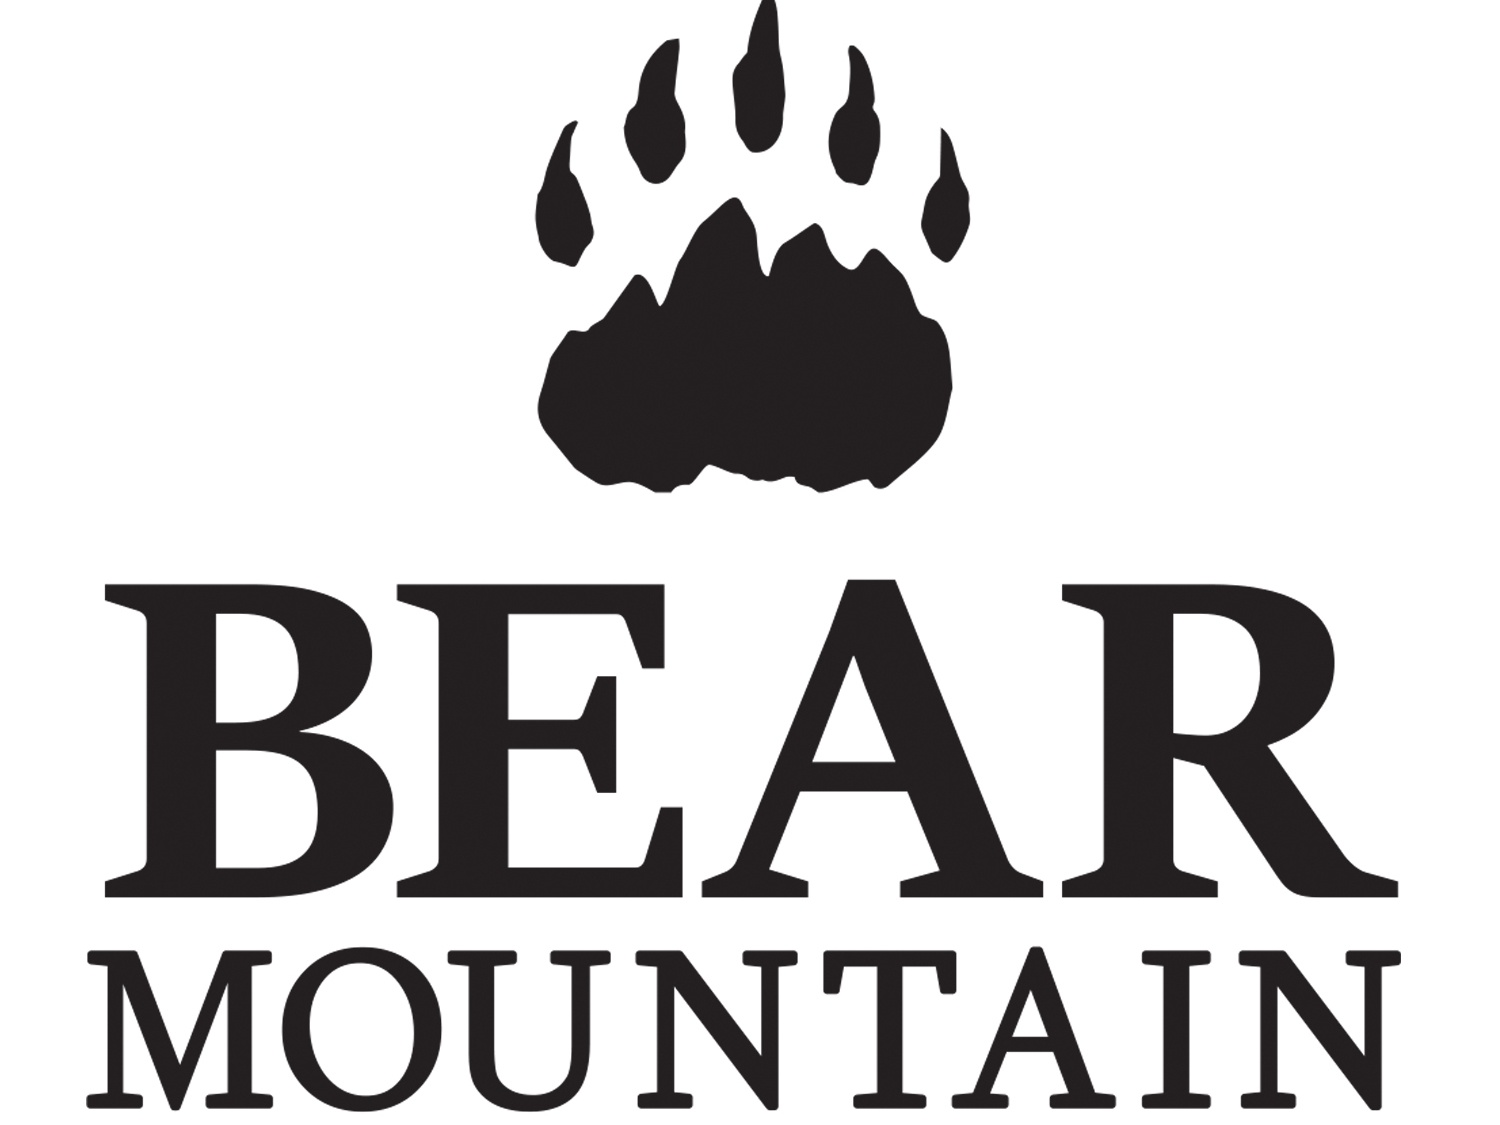 Bear Mountain Logo mountain bear lodge outdoors logo outdoors white black black and white logo logo design graphic